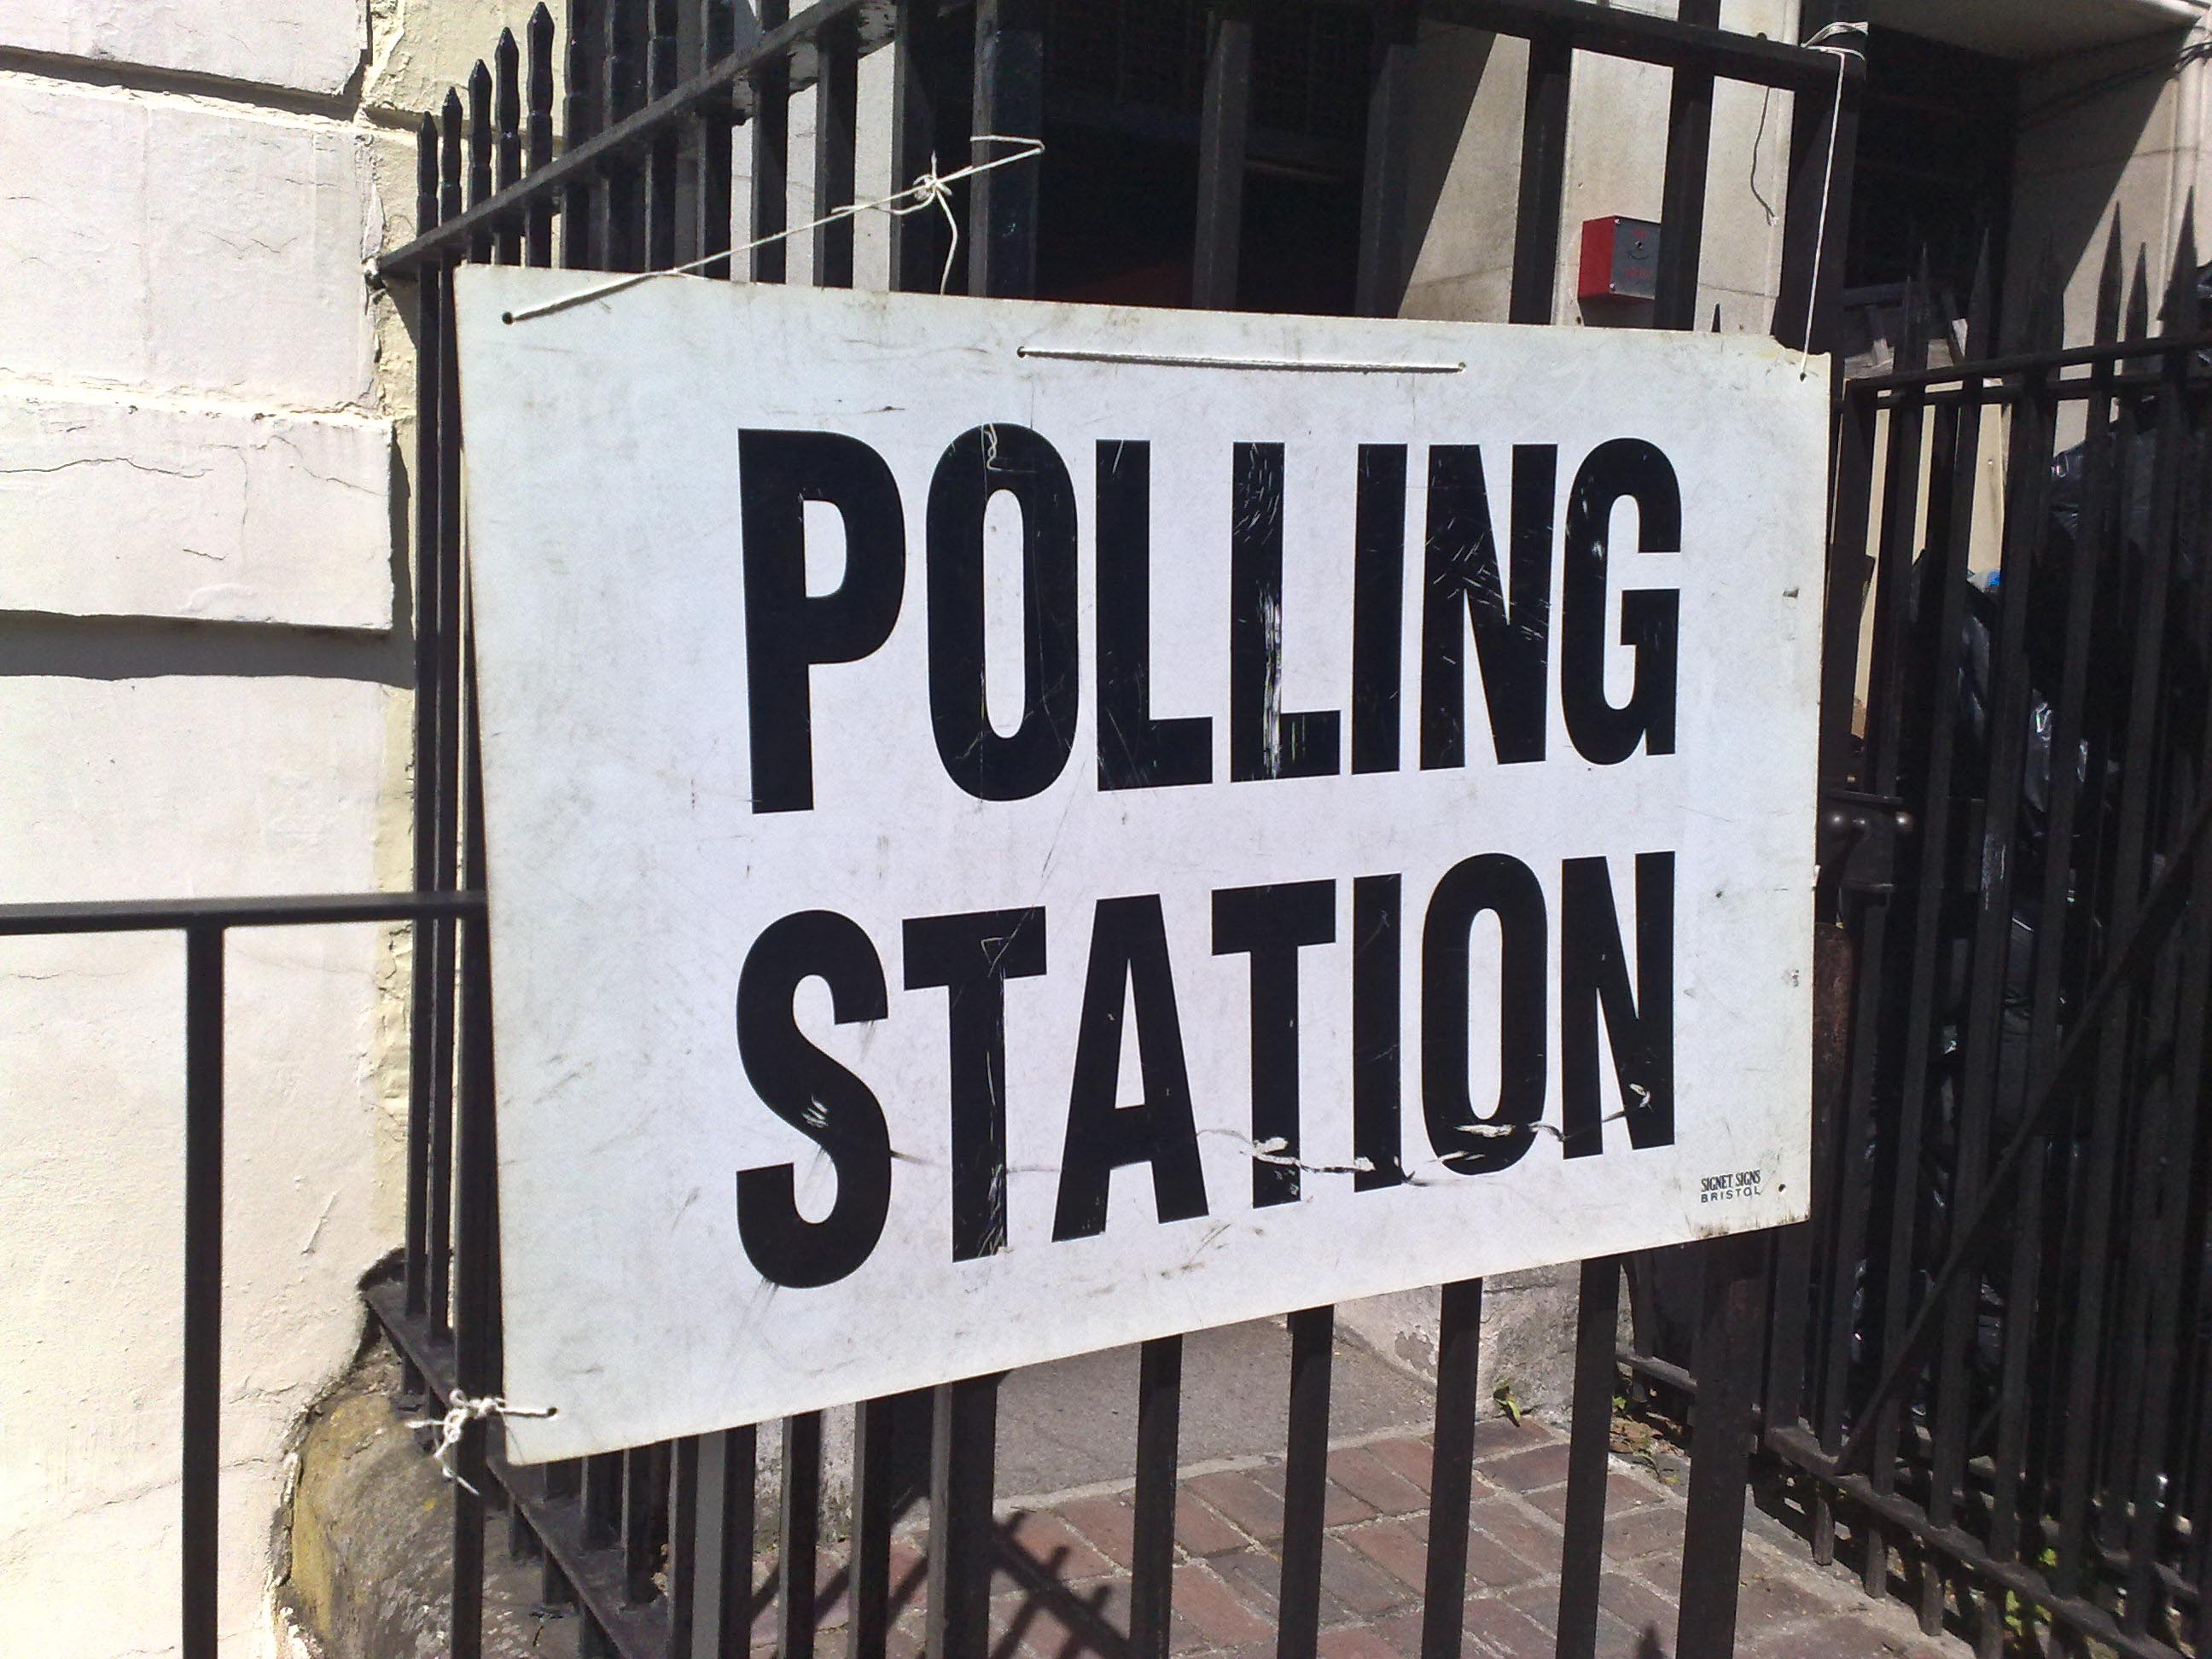 https://i0.wp.com/upload.wikimedia.org/wikipedia/commons/b/be/Polling_station_6_may_2010.jpg